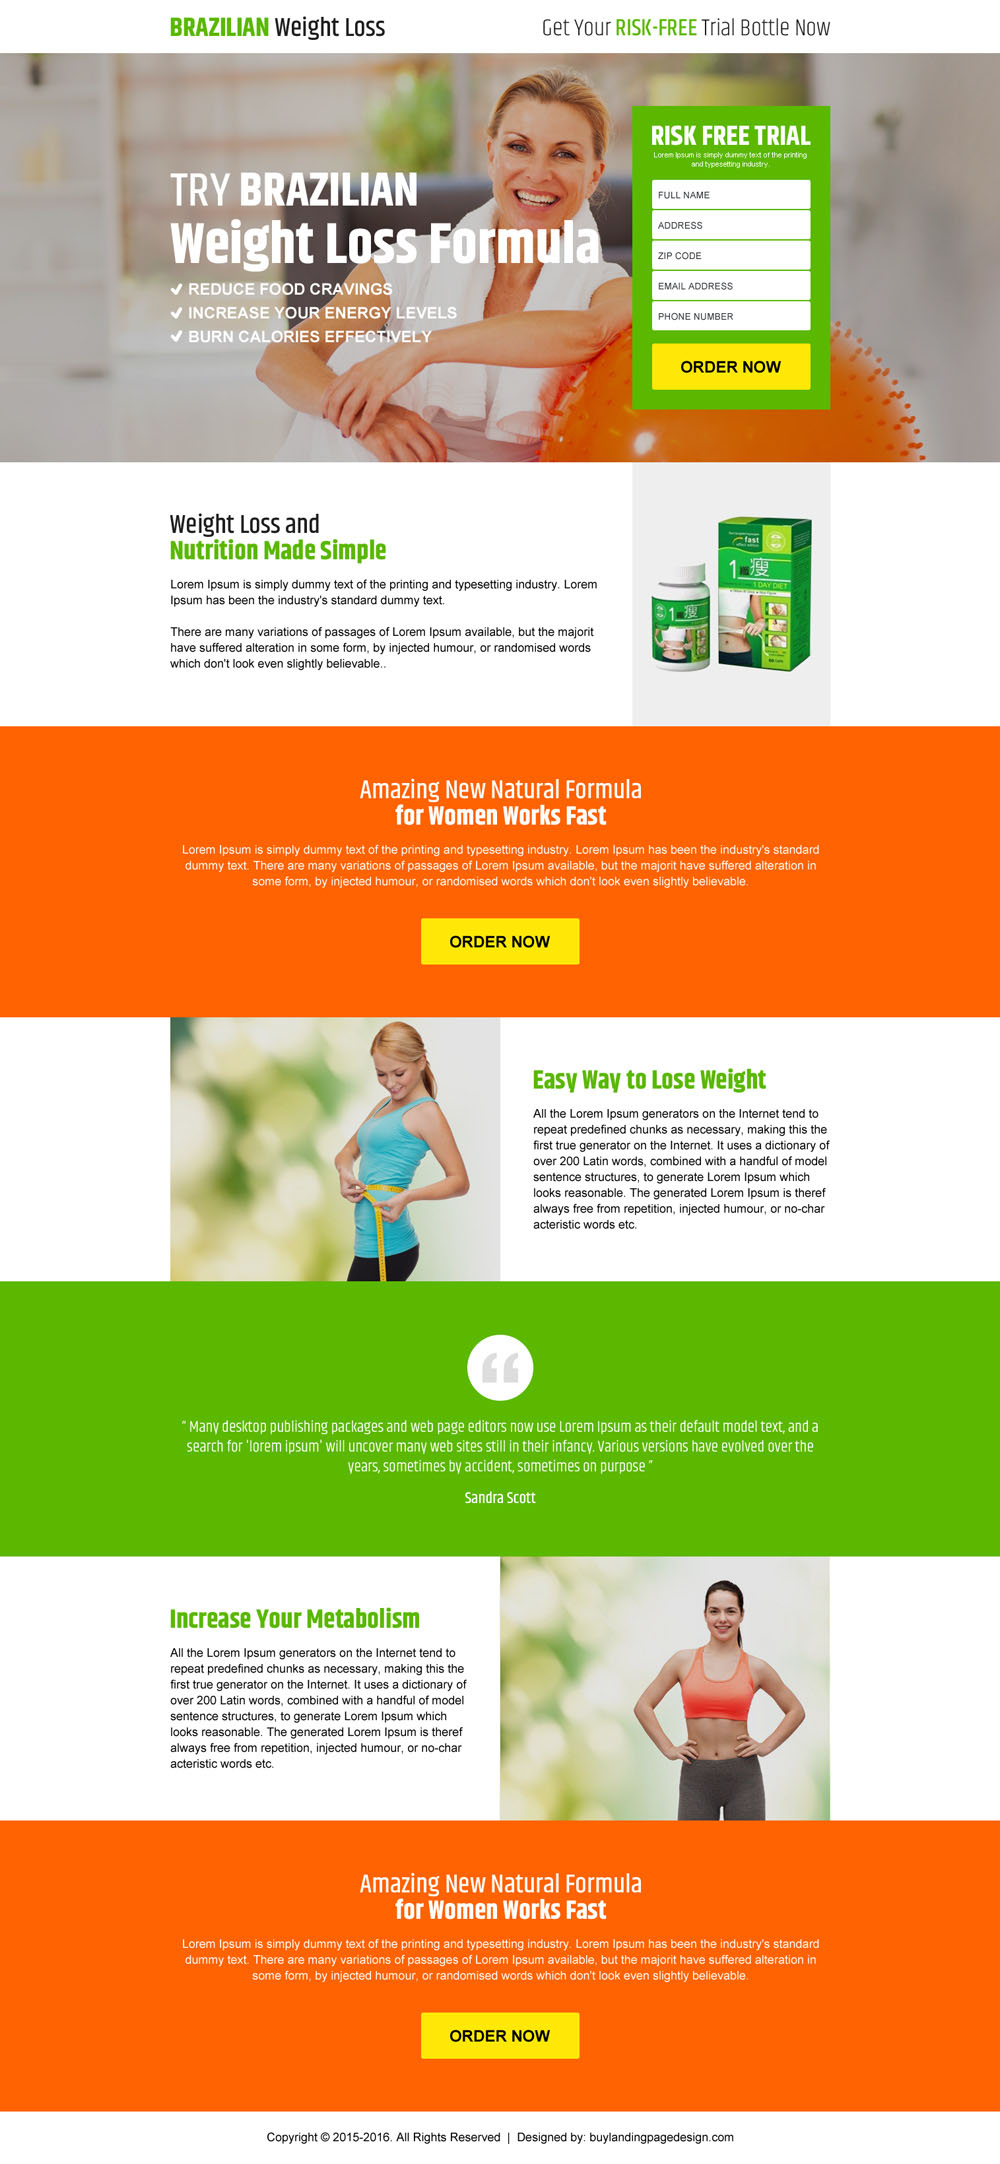 garcinia cambogia weight loss landing page design templates. Black Bedroom Furniture Sets. Home Design Ideas